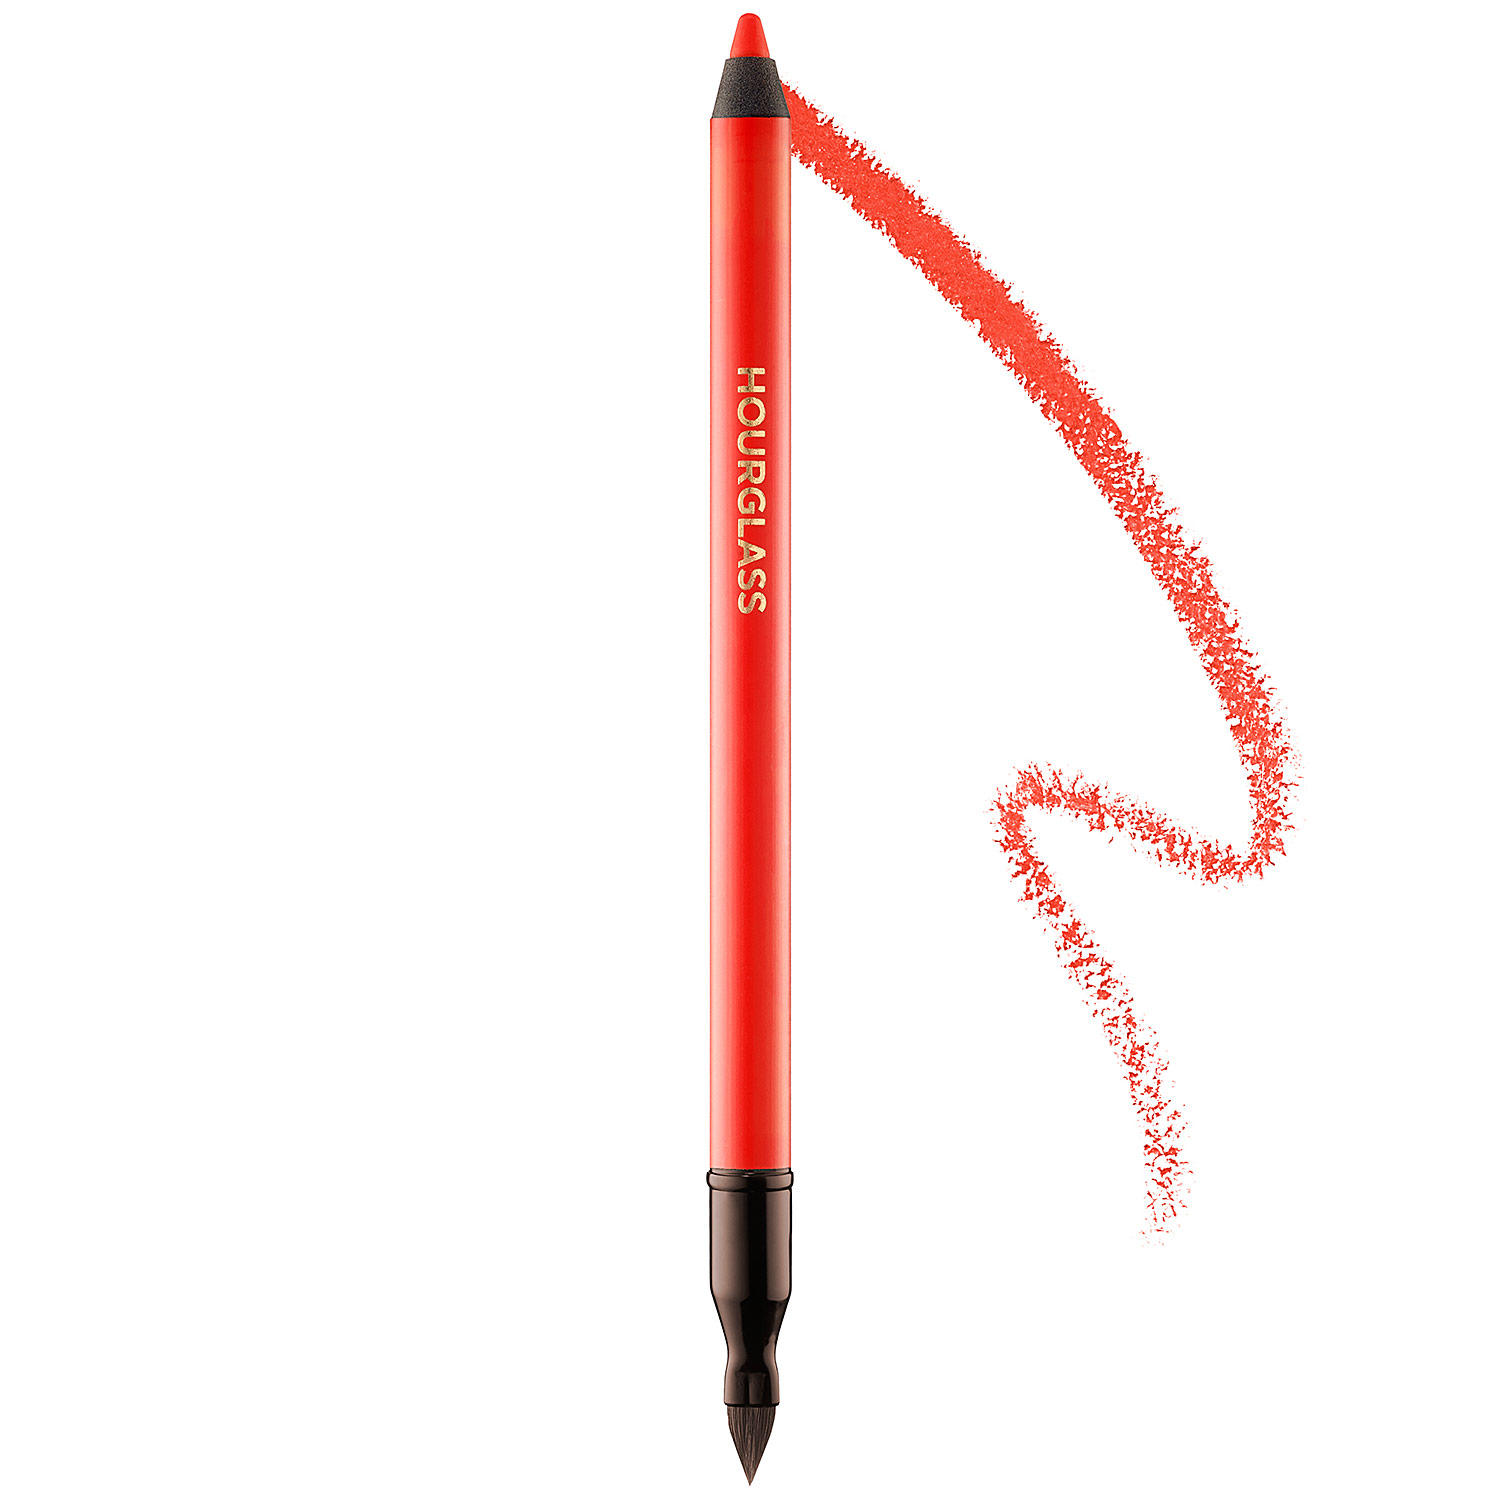 Hourglass Panoramic Lipliner Muse